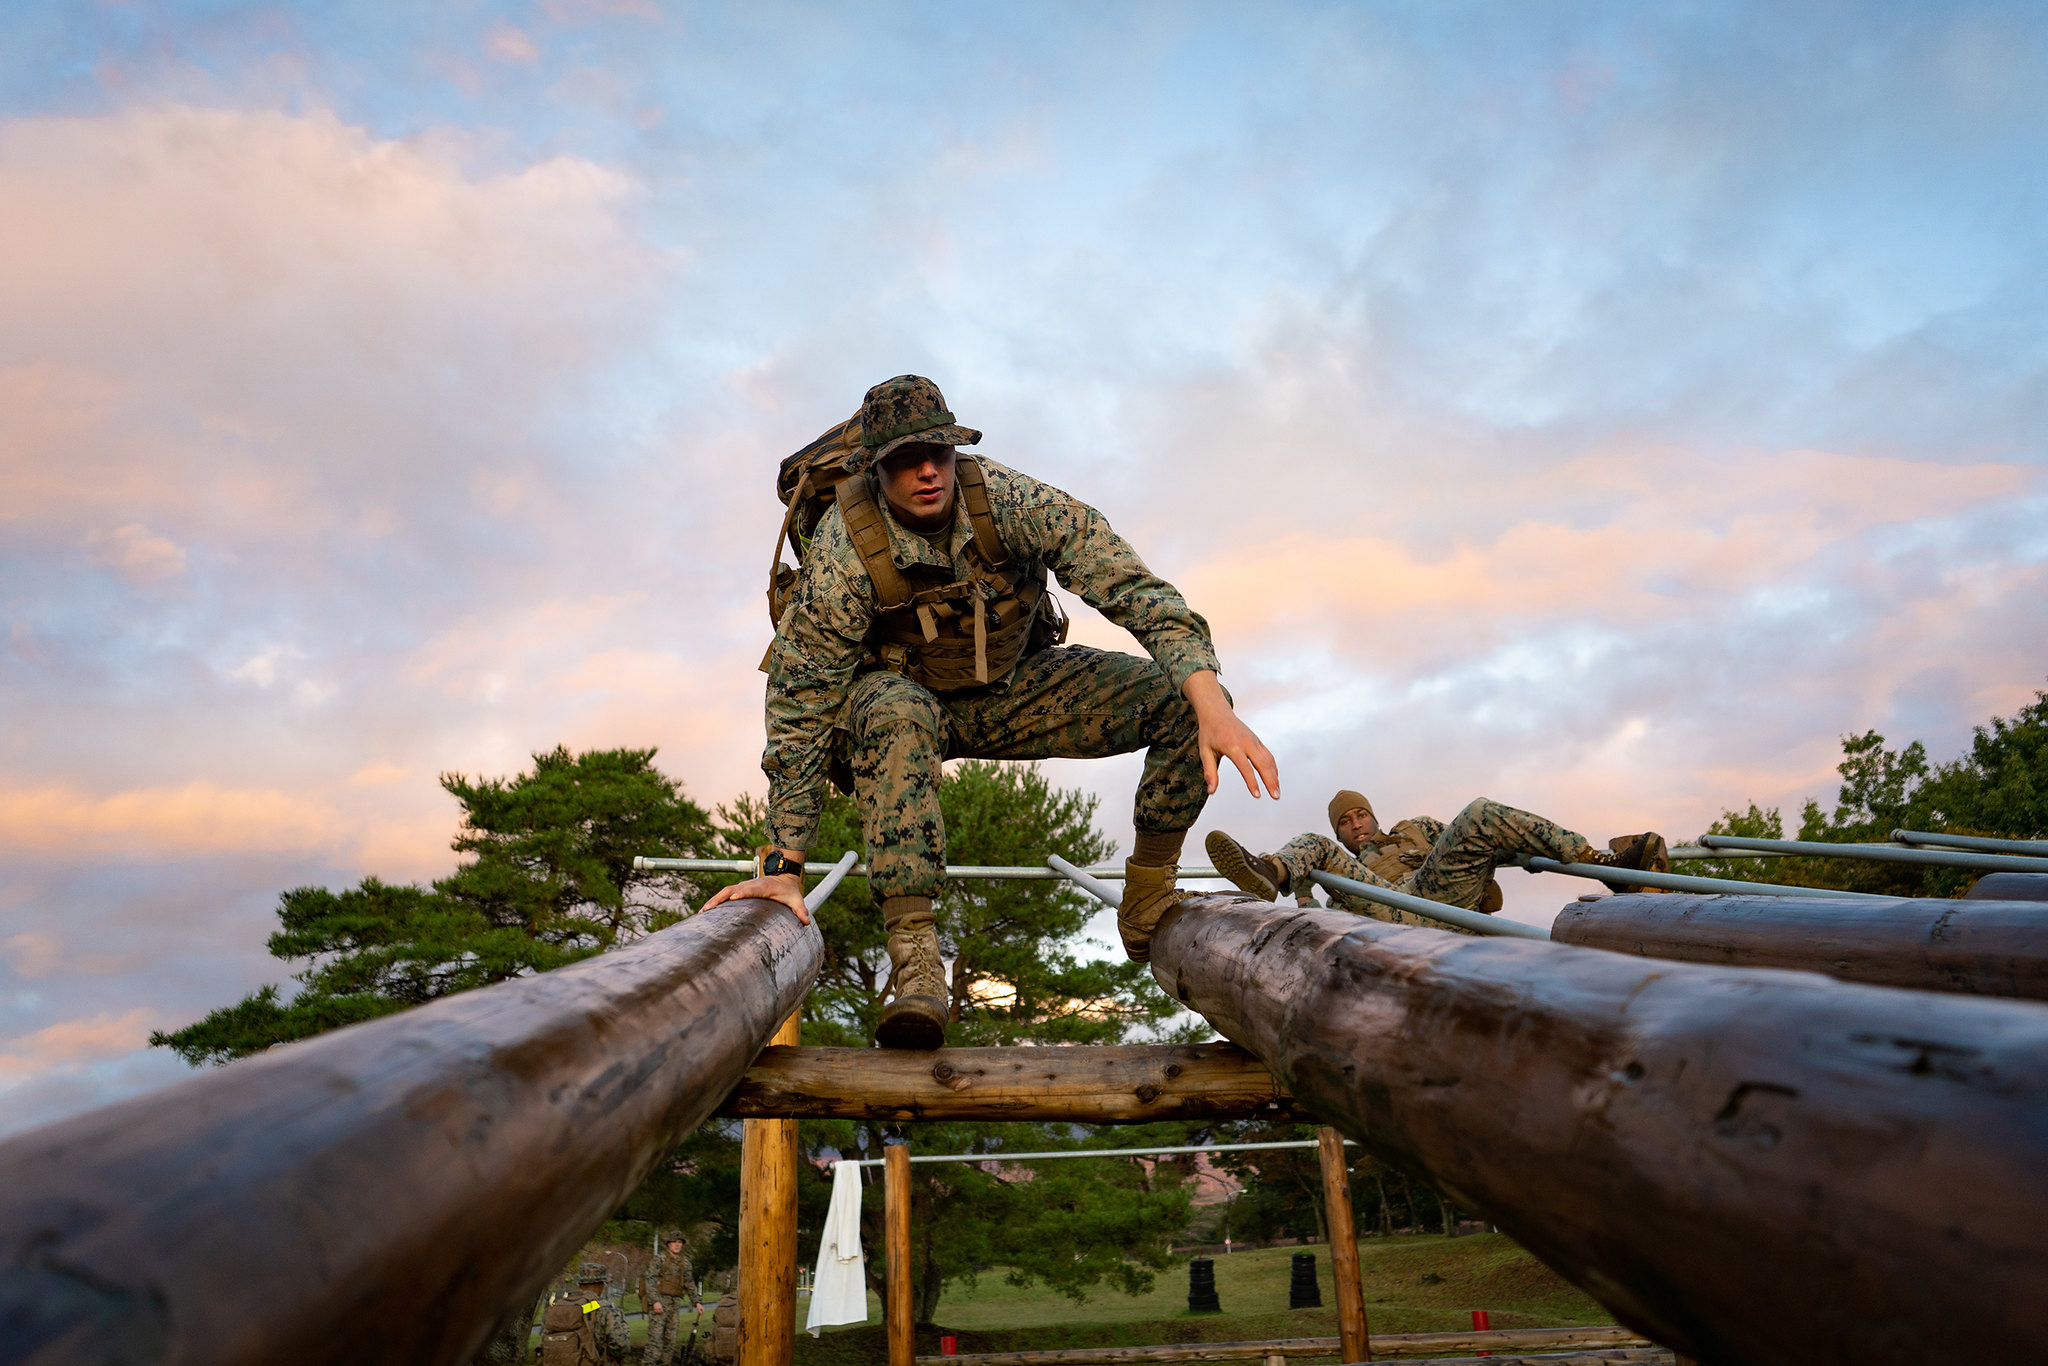 Marine Cpl. Jeffrey Wik runs through the obstacle course during a fire team competition as part of exercise Fuji Viper 20-1 on Camp Fuji, Japan, Oct. 30, 2019. (Cpl. Timothy Hernandez/Marine Corps)